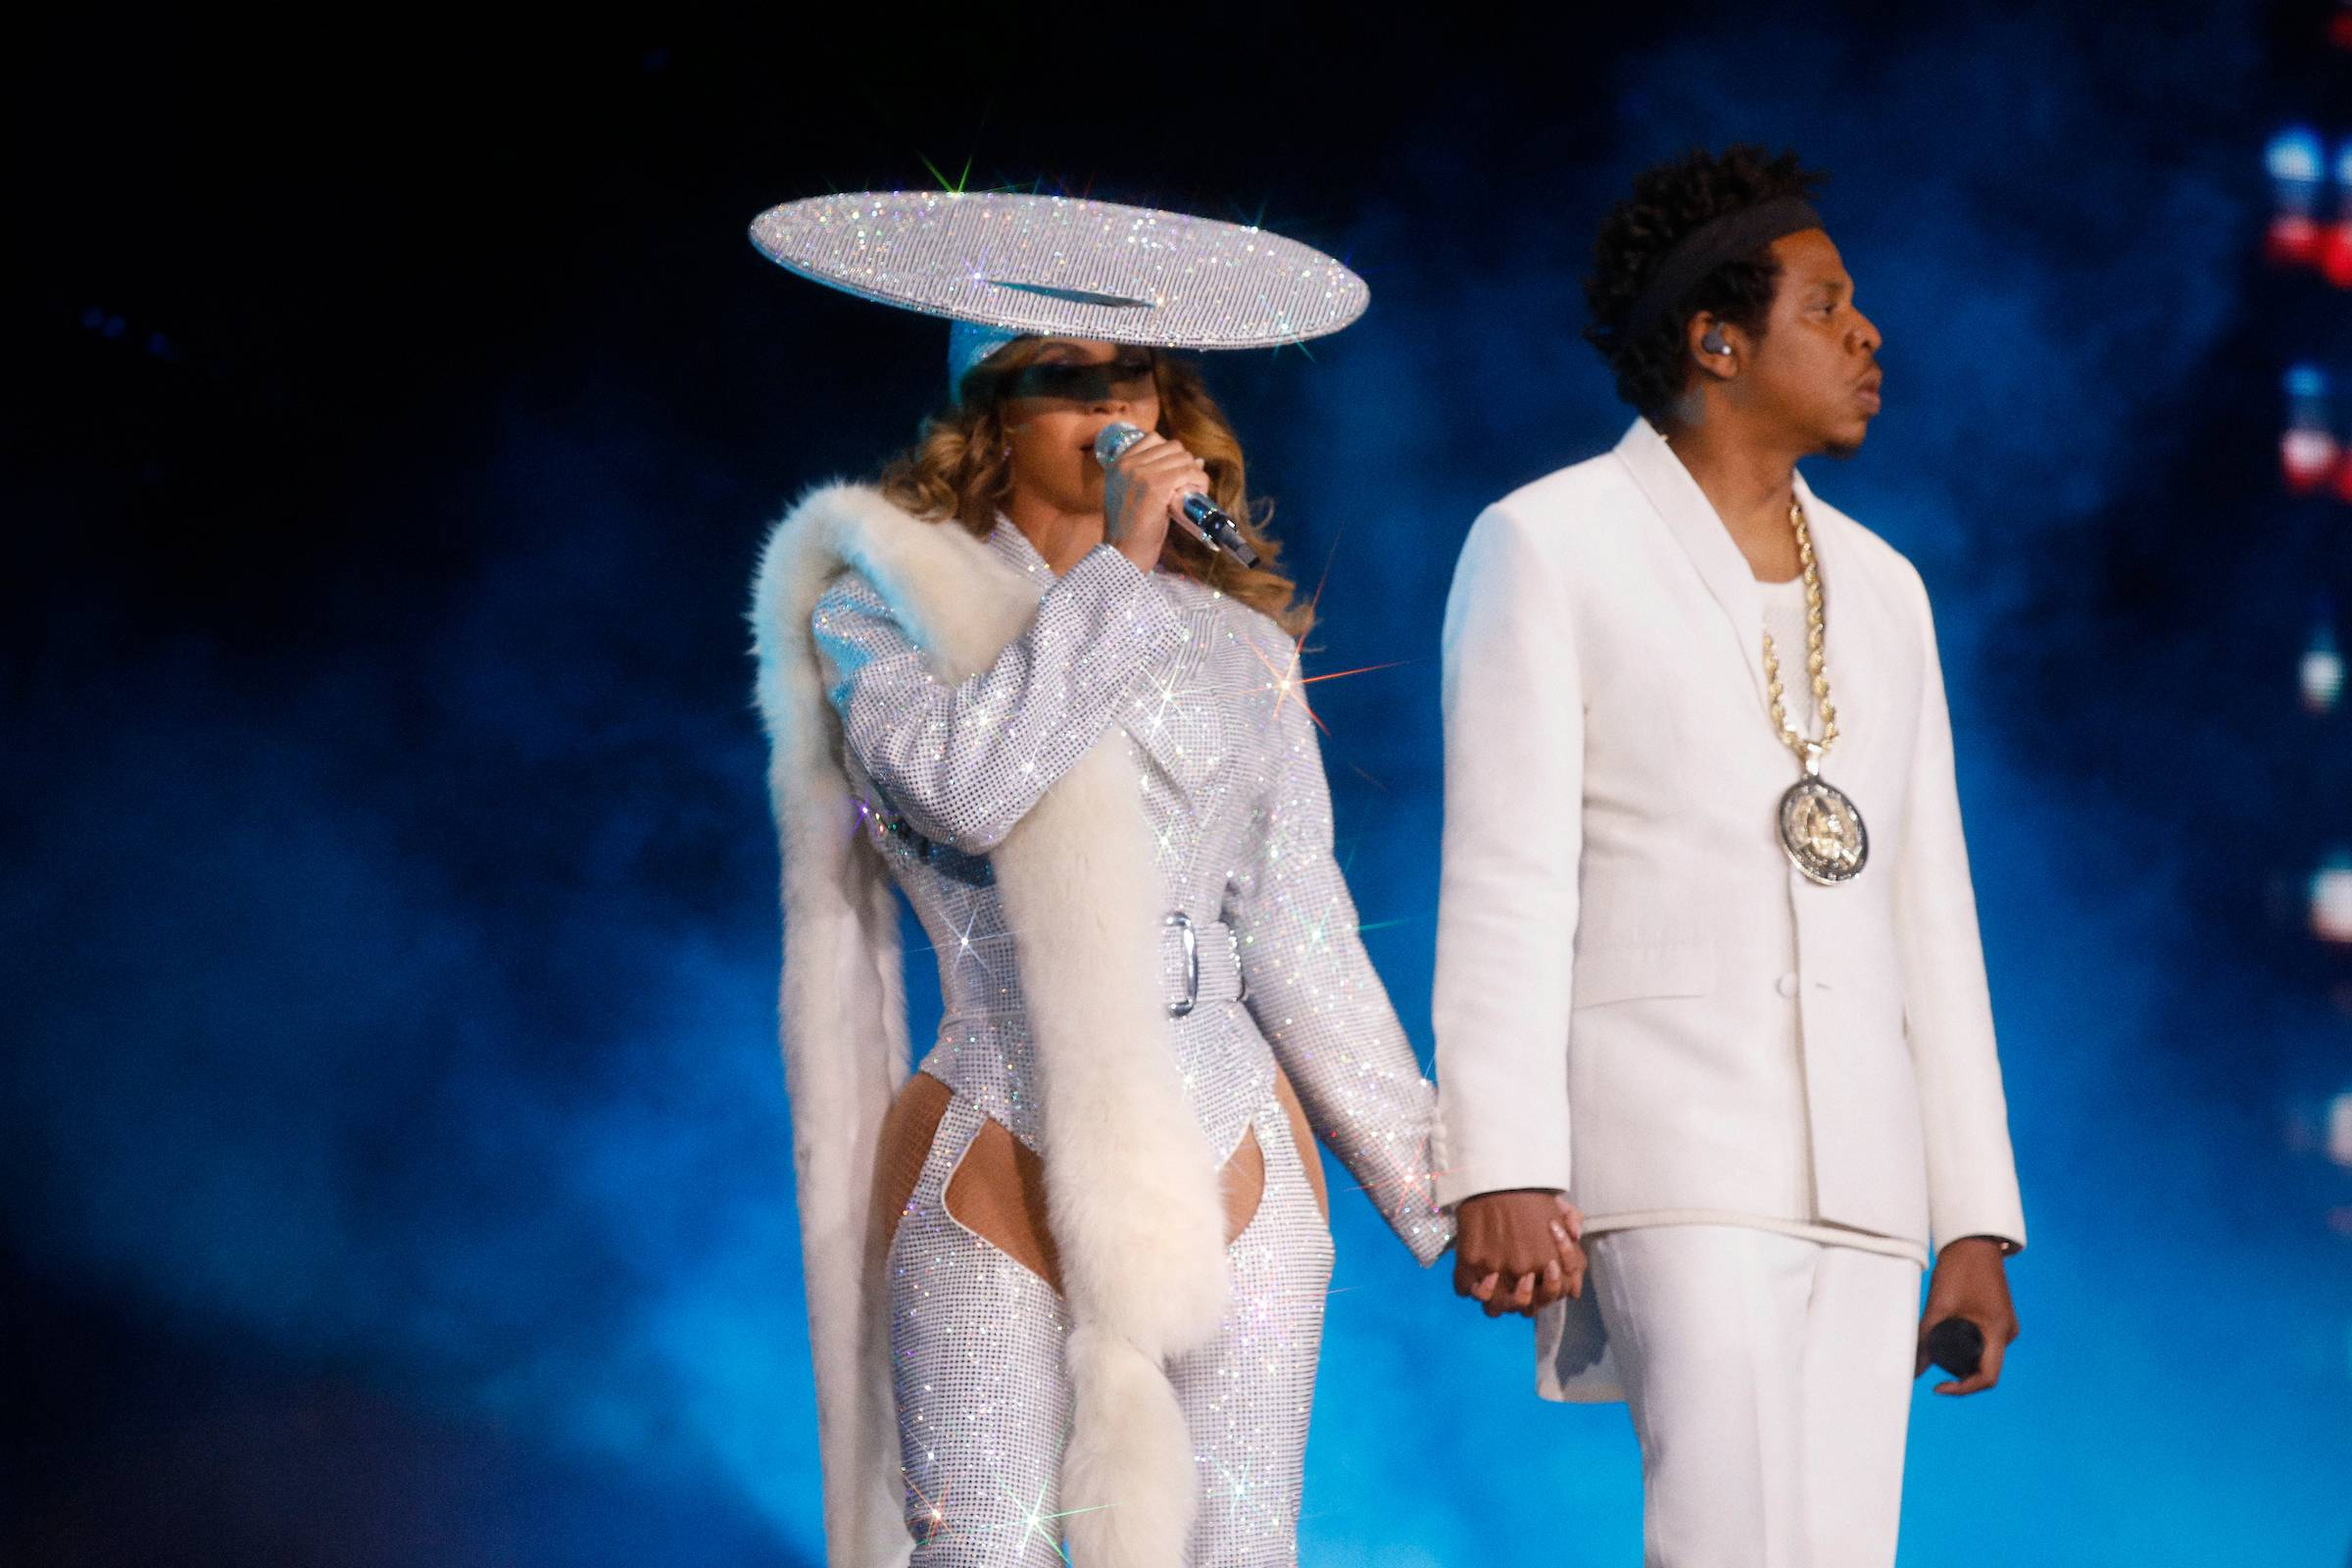 Beyonce and Jay-Z at BC Place Stadium, Vancouver, Oct. 2 2018